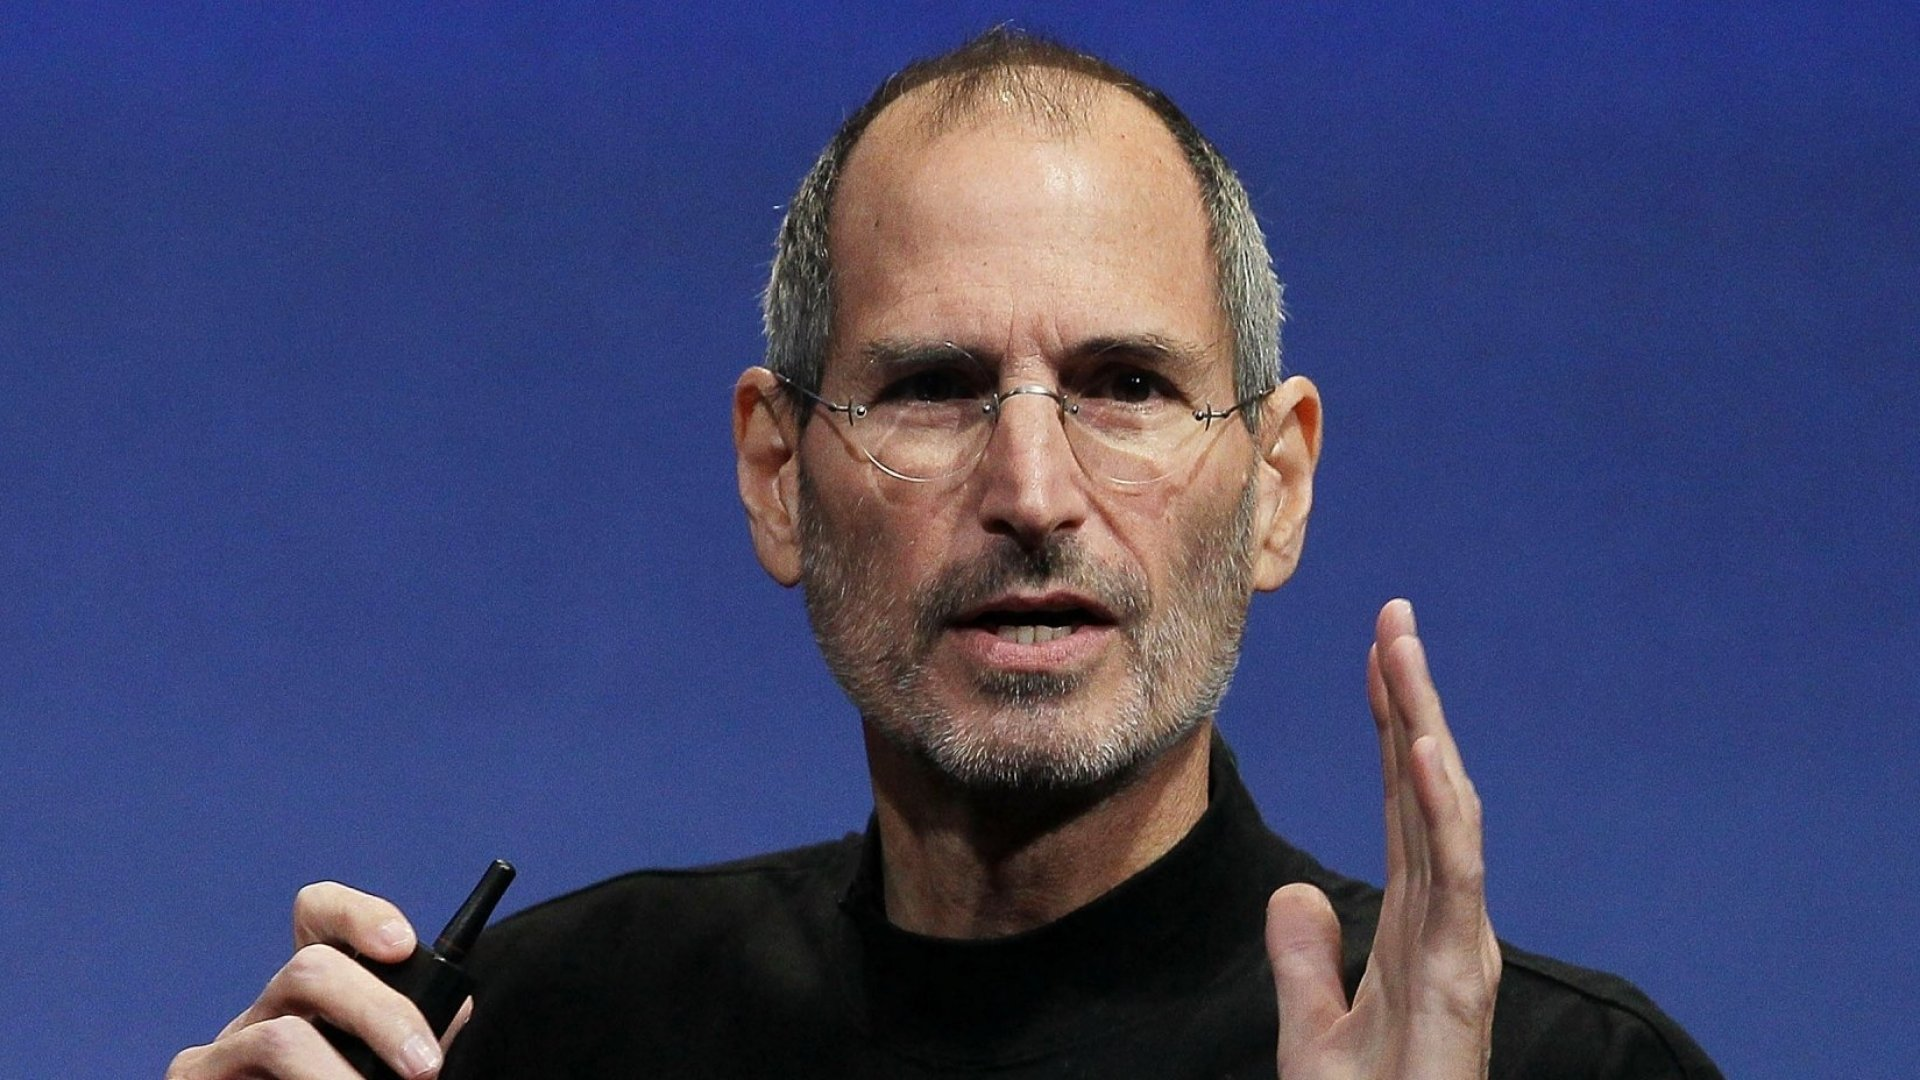 Steve Jobs Embraced What Most People Find Crazy Boring (And You Should Too)